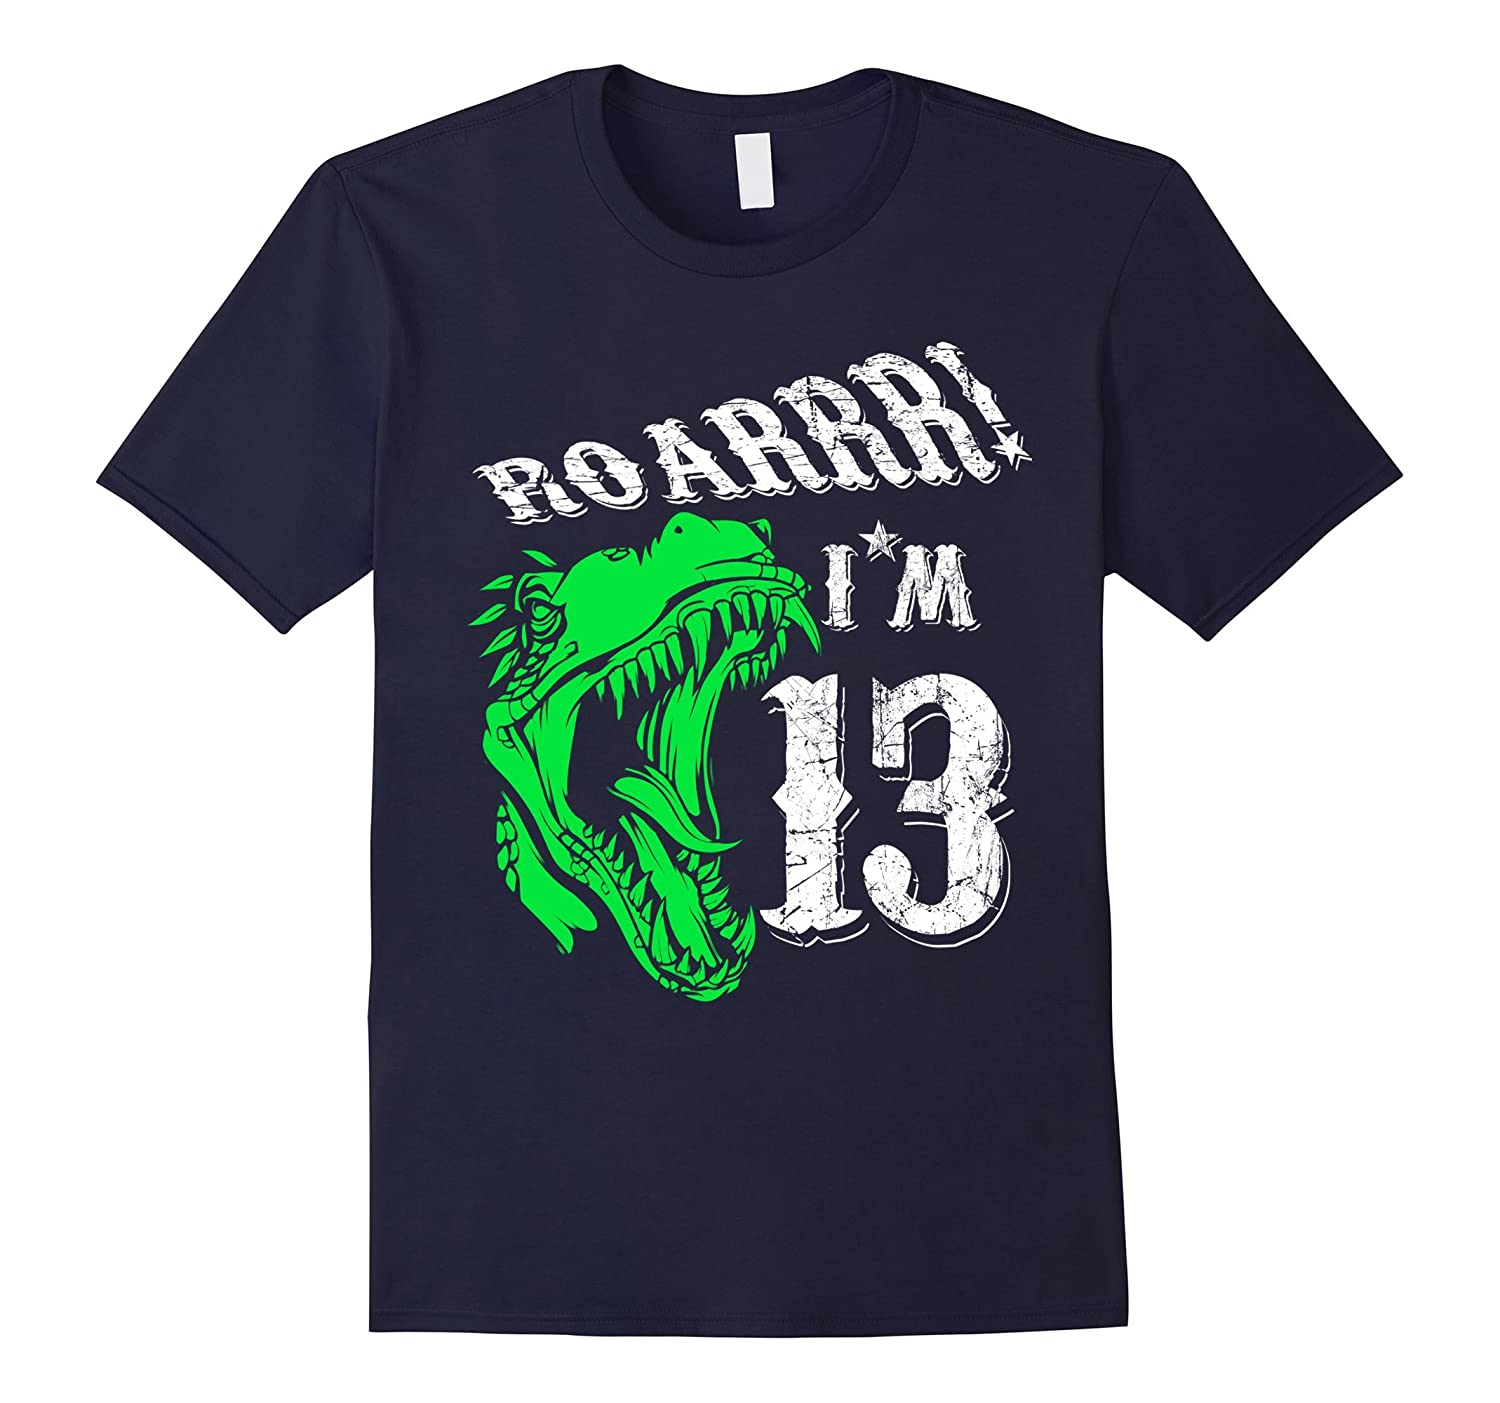 13 Years Old T-Shirts from Spreadshirt Unique designs Easy 30 day return policy Shop 13 Years Old T-Shirts now!